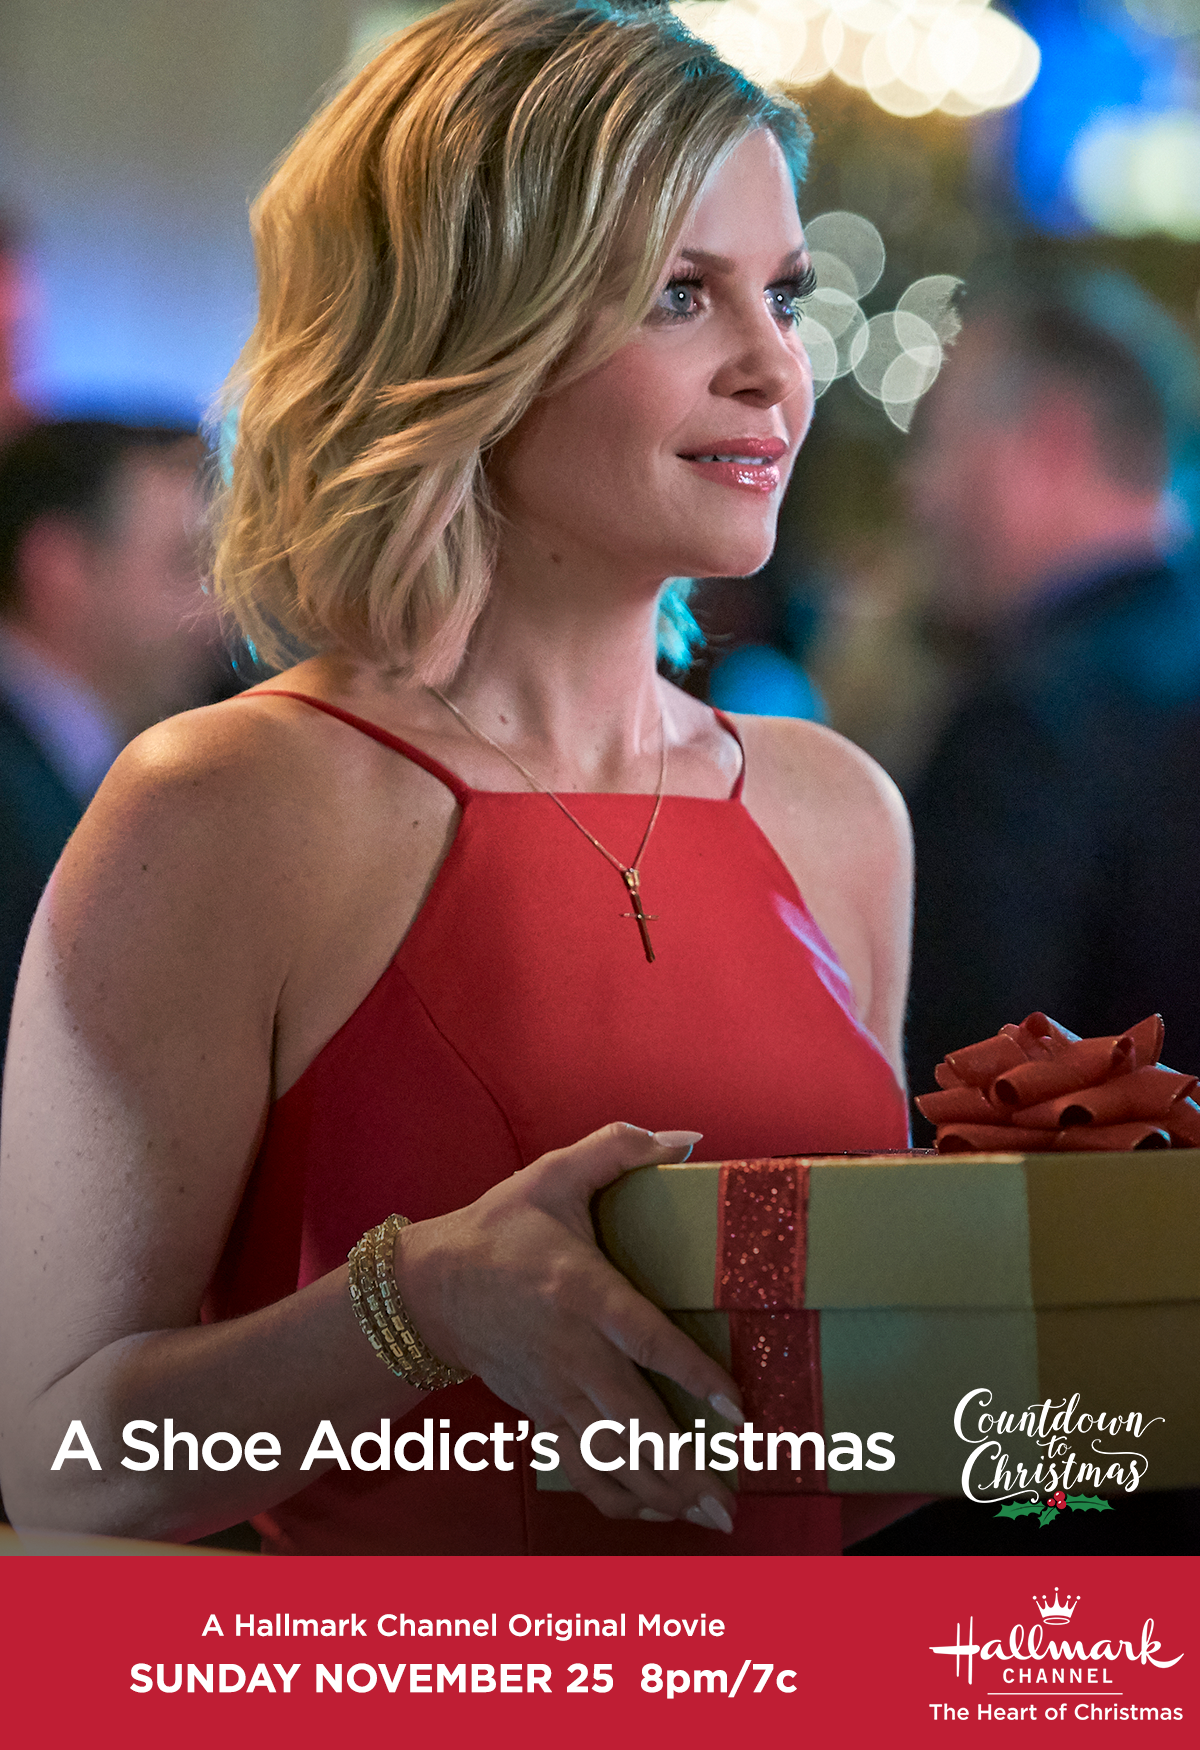 Christmas In Love 2020 With Cameron Bure A Shoe Addict's Christmas | Hallmark Channel